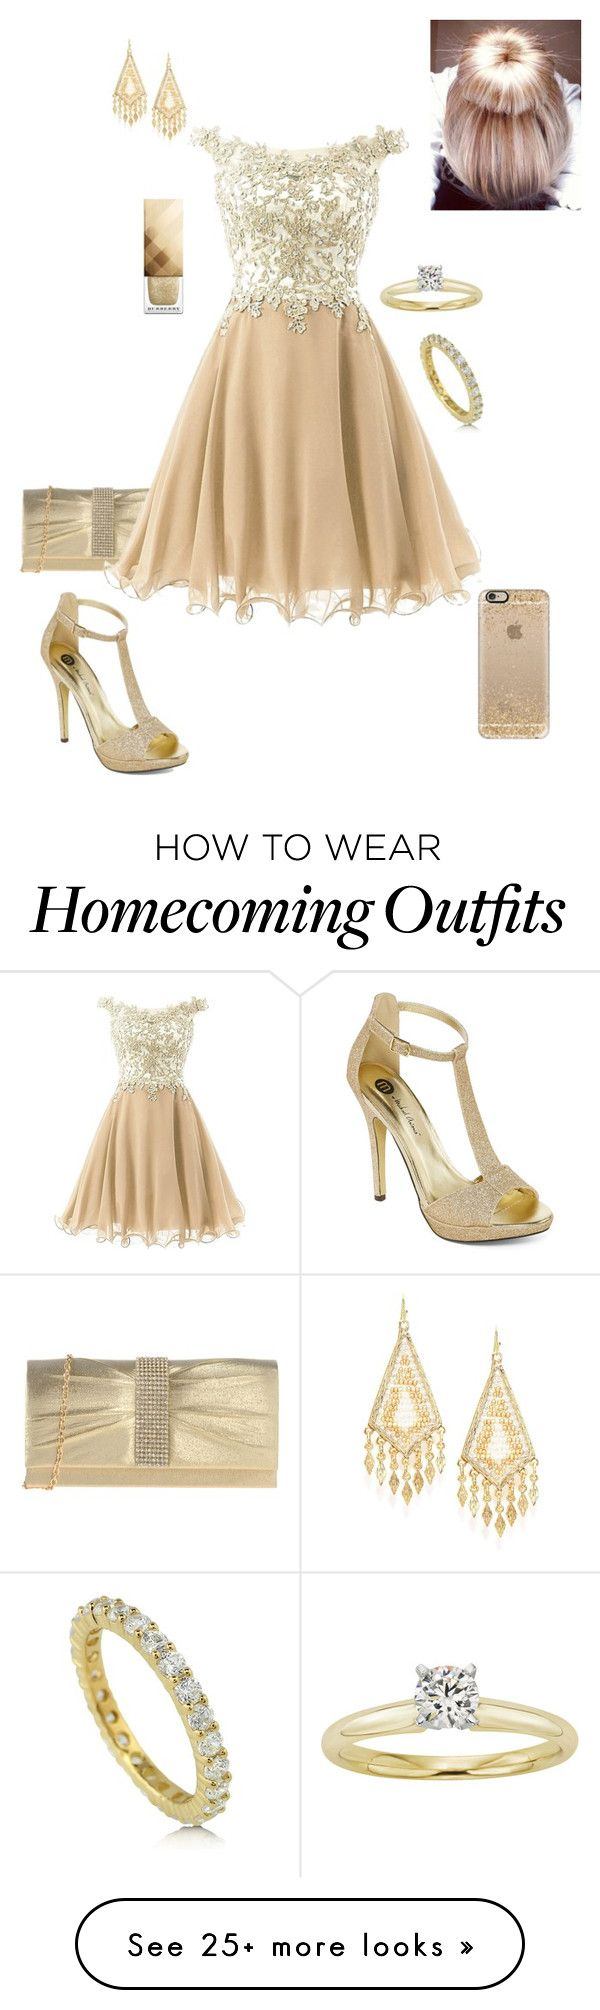 """Gold Christmas"" by briony-jae on Polyvore featuring Marina Galanti, BERRICLE, Michael Antonio, Cara, Modern Bride, Casetify and Burberry"